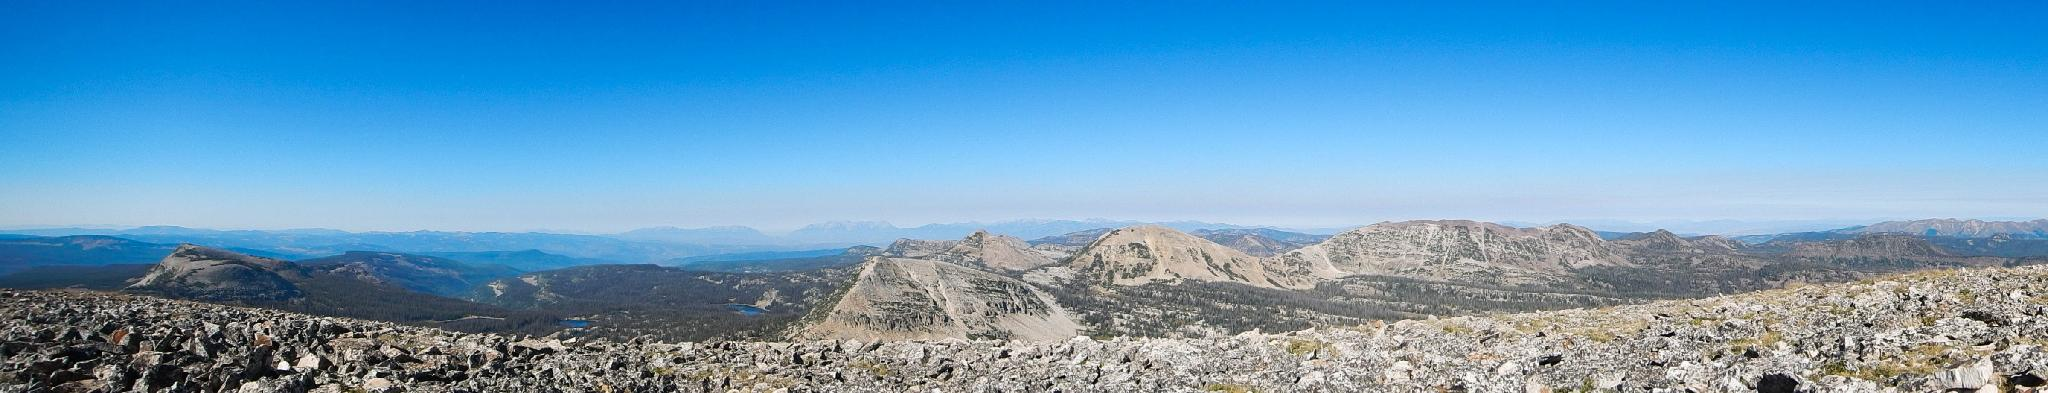 Panorama from the summit of Mount Watson